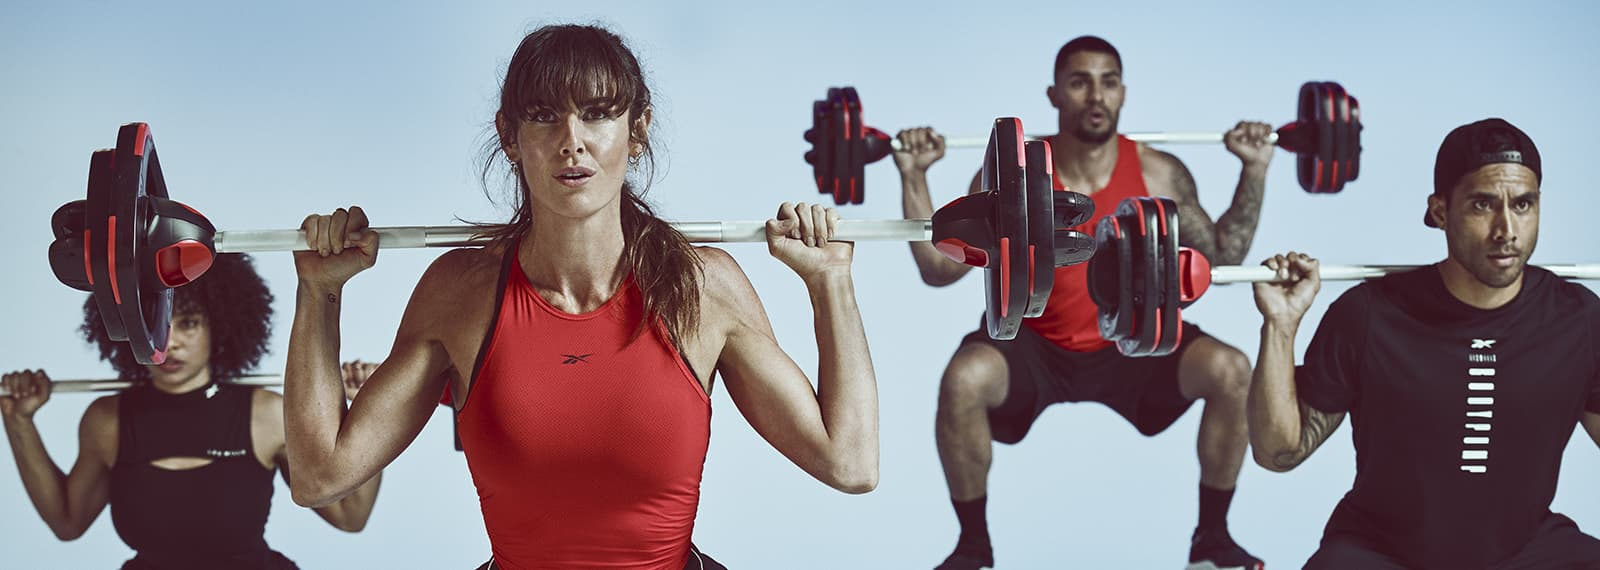 Les Mills Bodypump im Fitness-Loft be part of the family